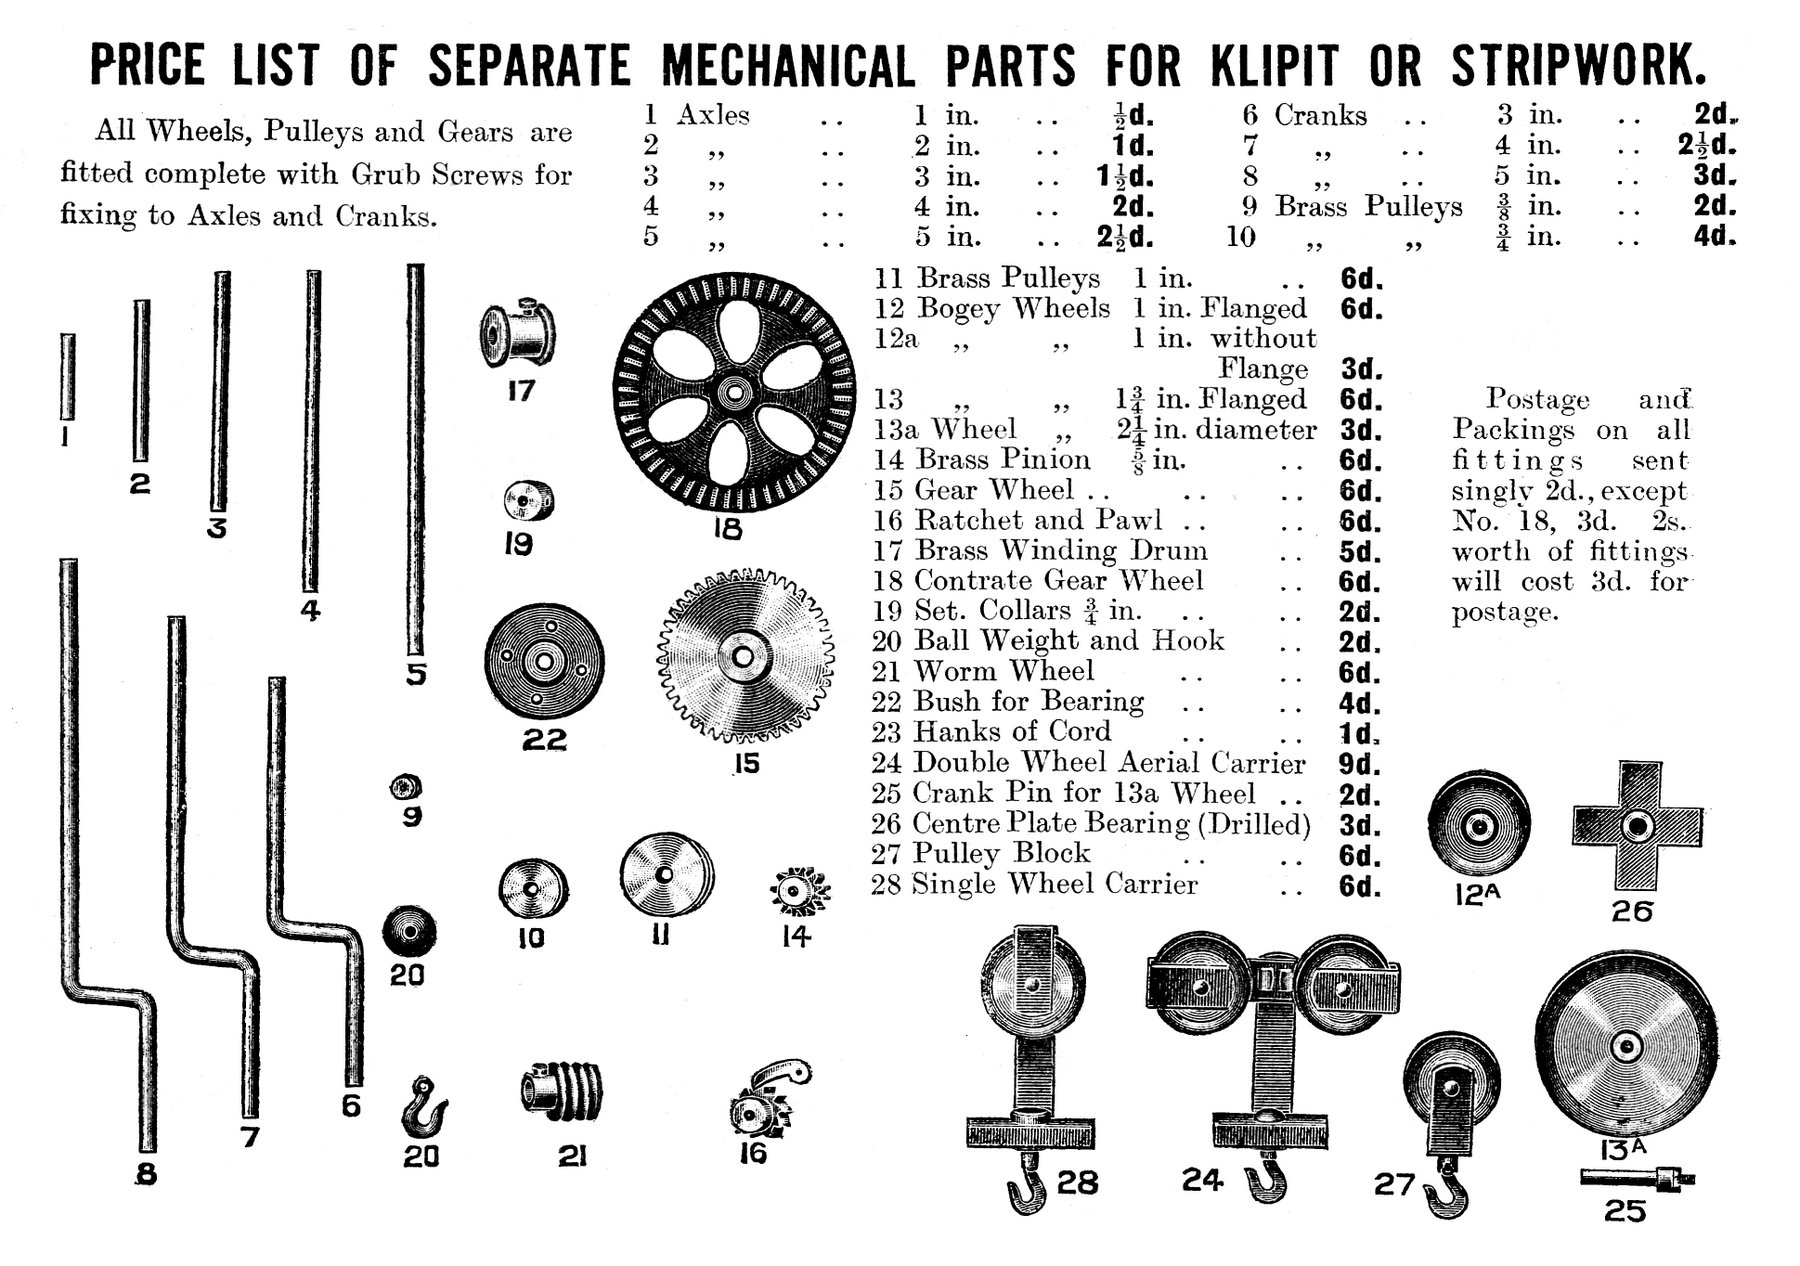 list of mechanical parts for klipit or stripwork the brighton 1916 mechanical parts for klipit or stripwork